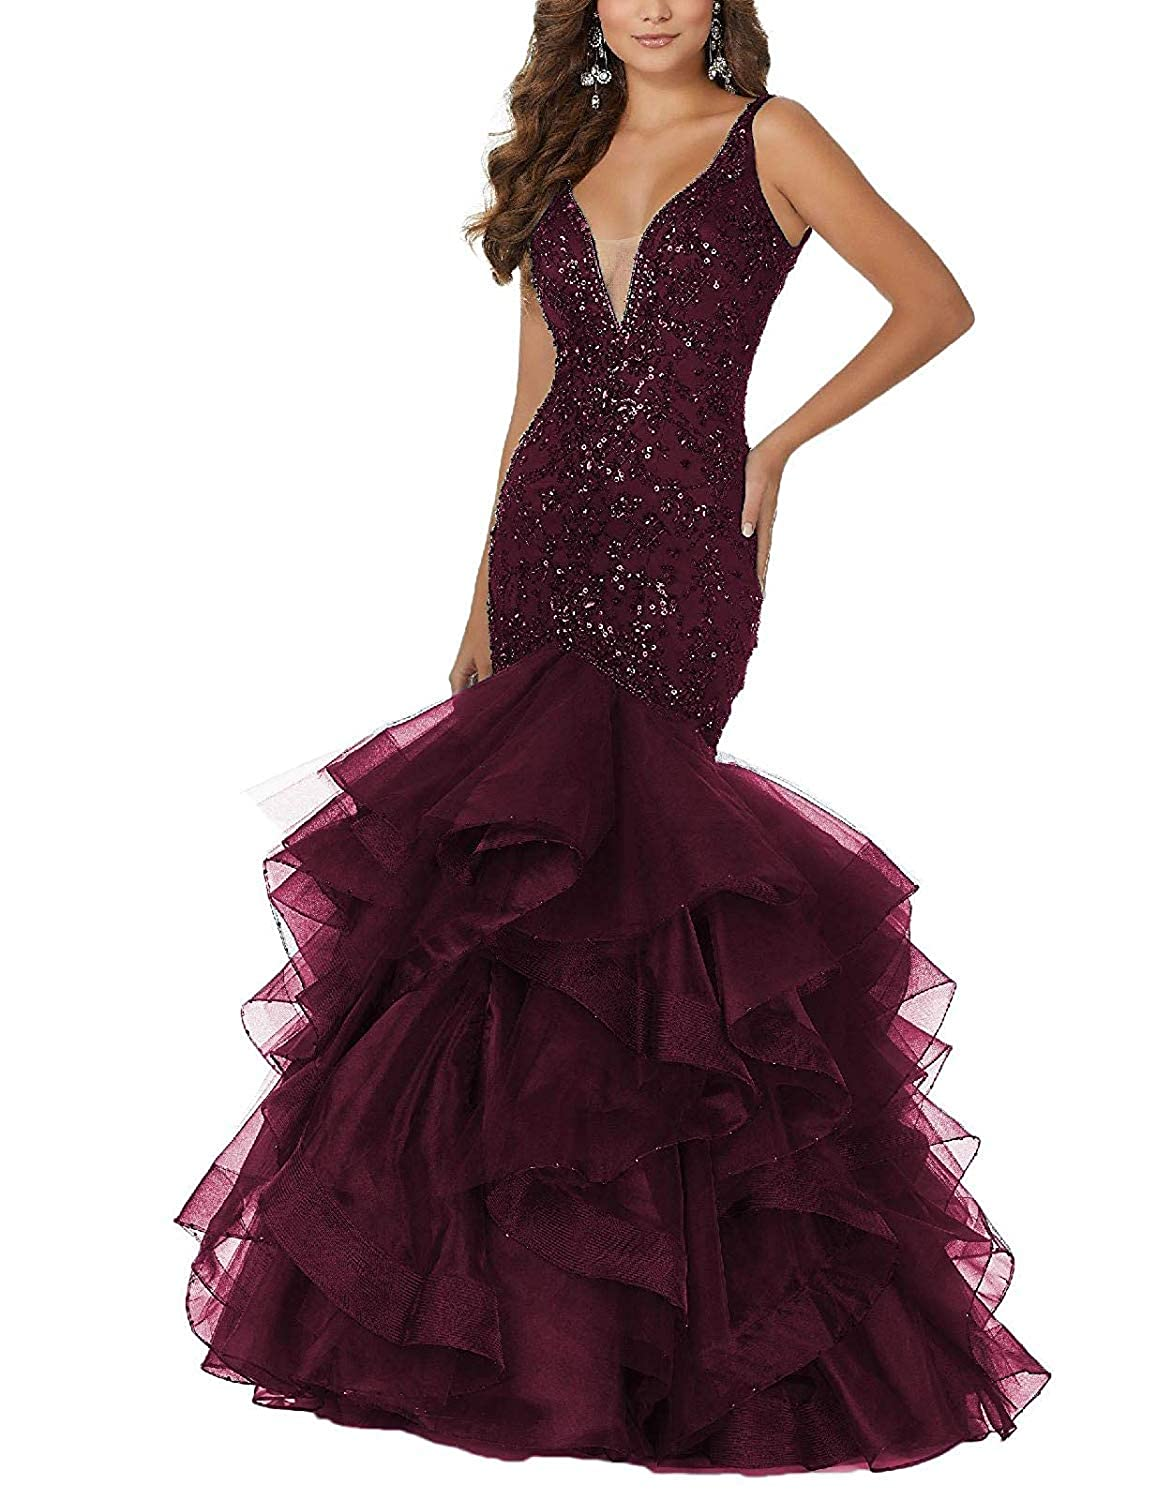 Burgundy PearlBridal Women's Beaded Sequins Mermaid Lace Long Prom Dresses Ruffles Evening Ball Gowns